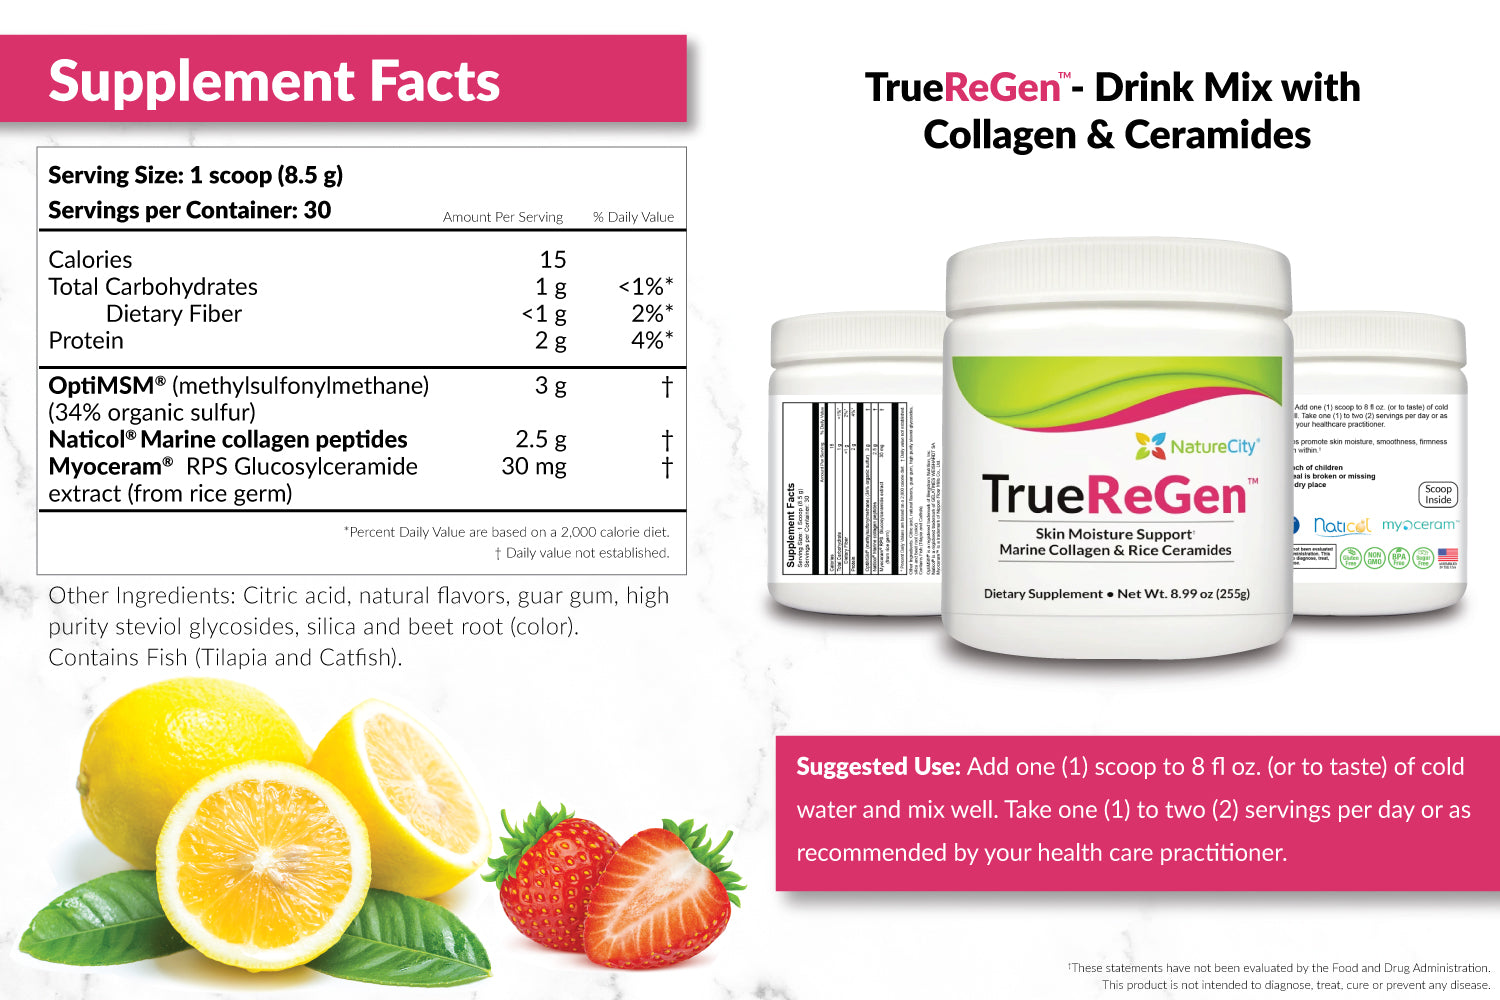 TrueReGen Supplement Facts and Suggested Use